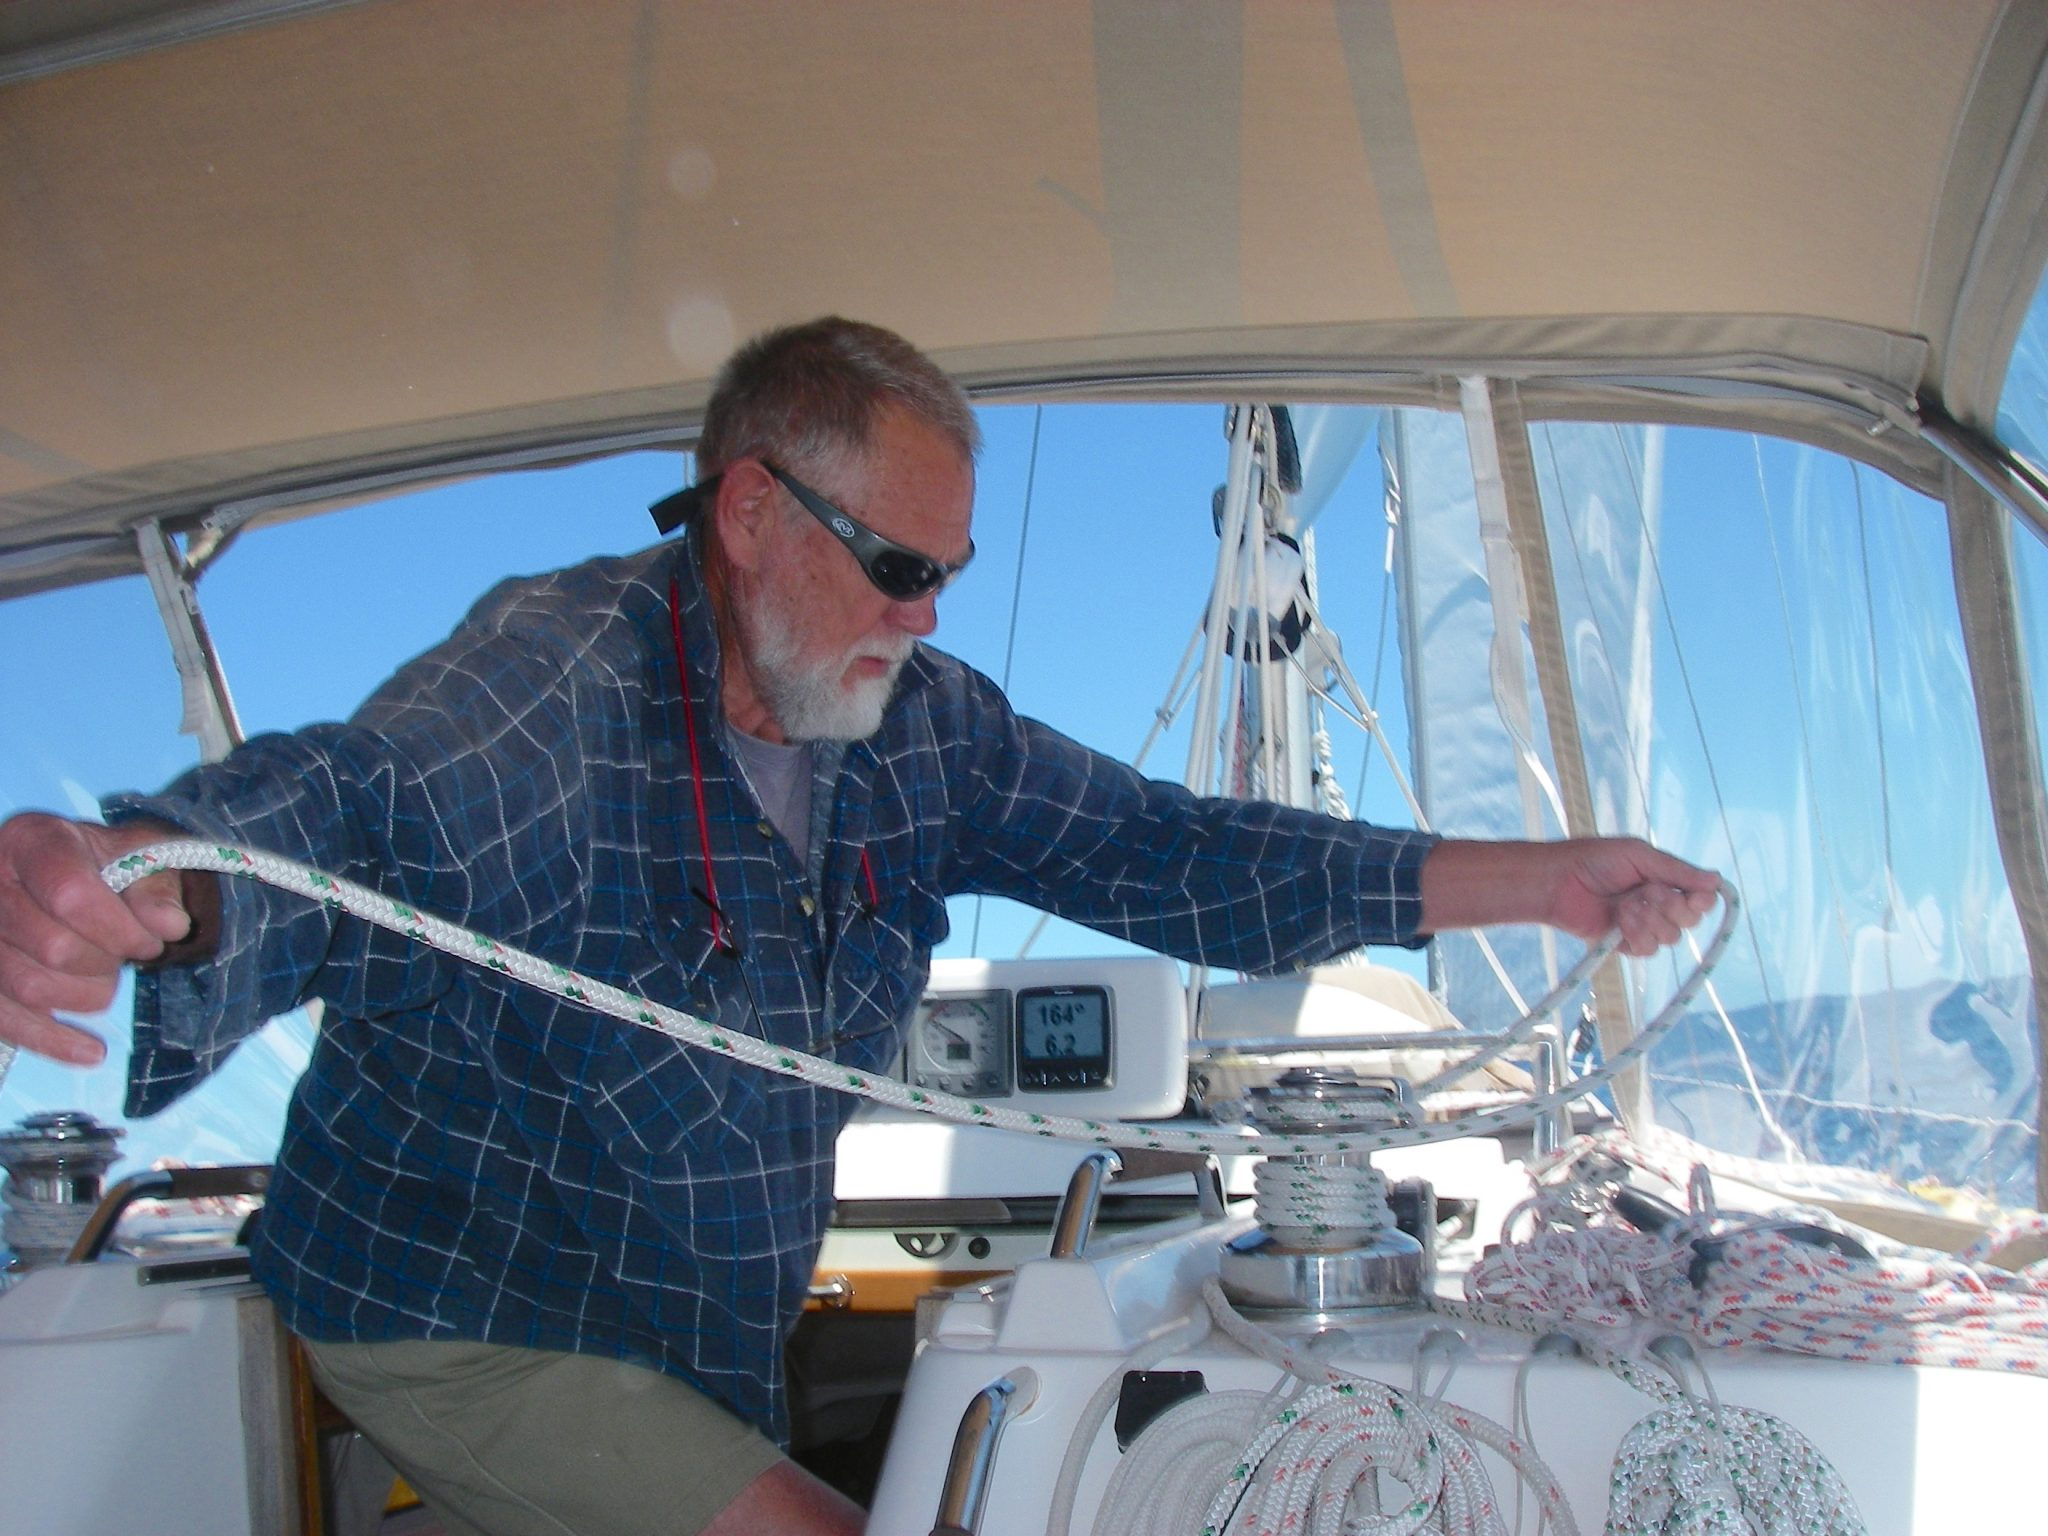 71. Rod helping with sailing Joyful